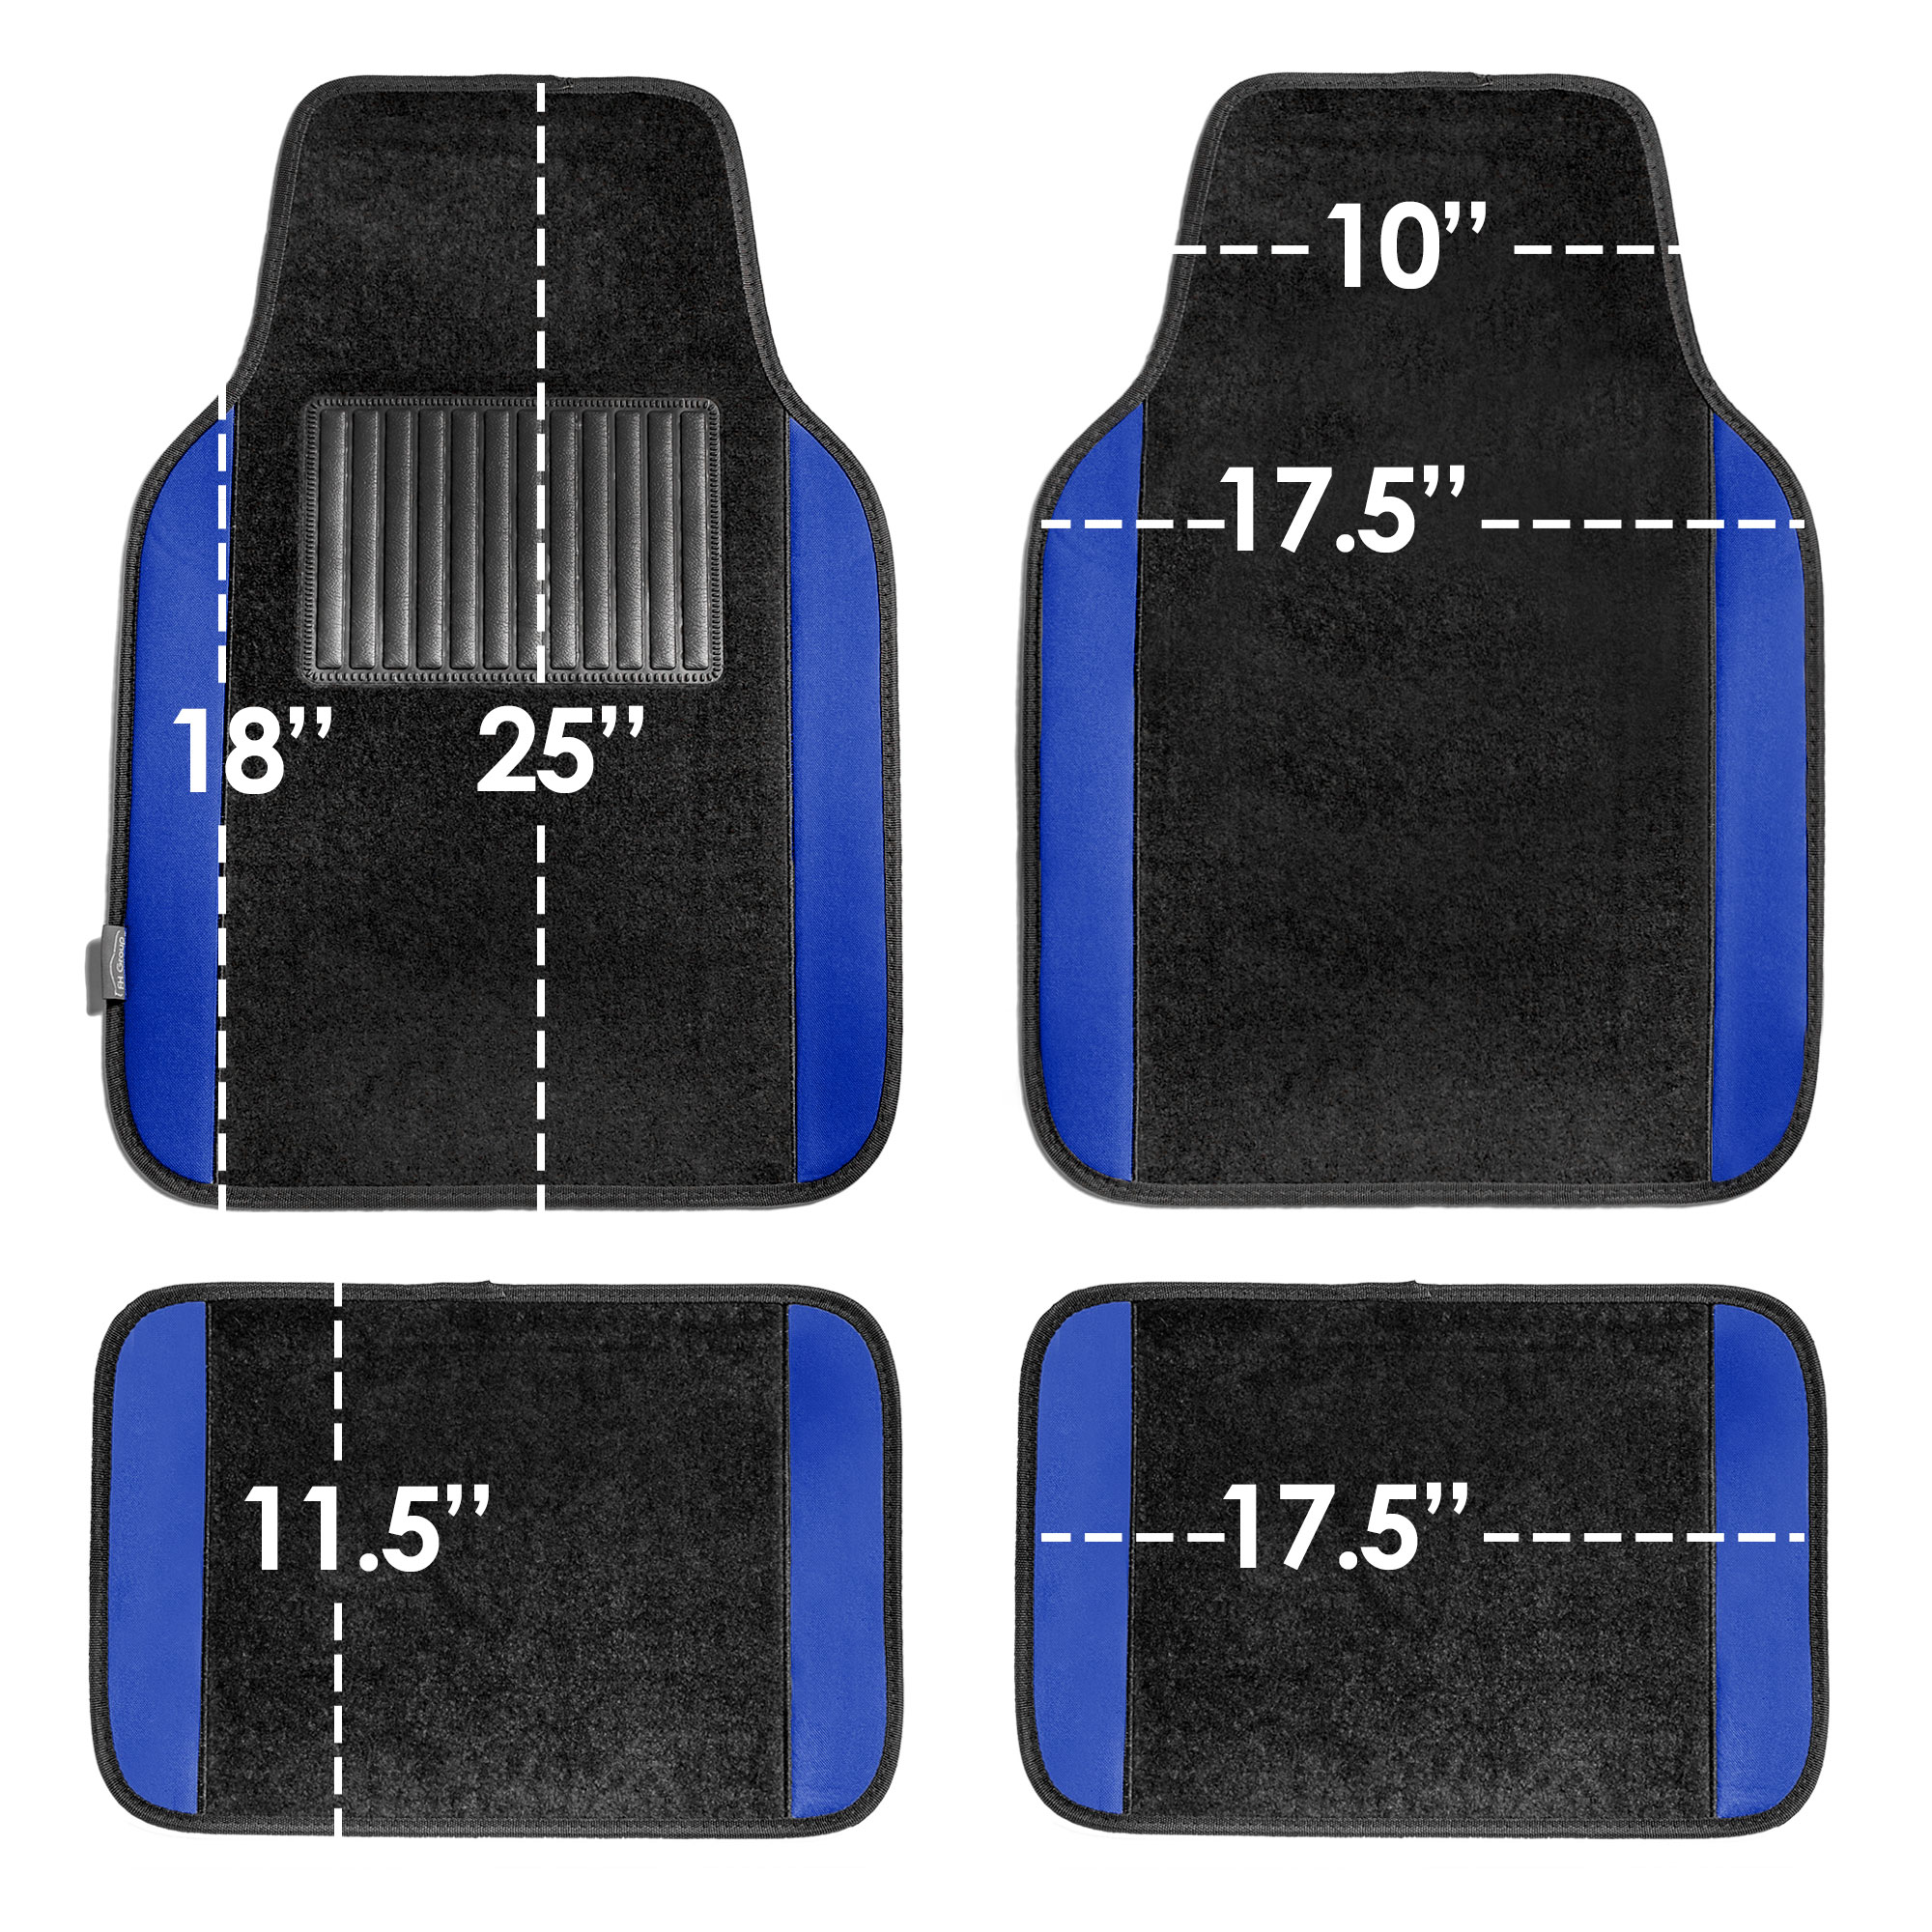 4pcs-Universal-Carpet-Floor-Mats-for-Car-SUV-Van-10-Color-Options-Full-Set thumbnail 12